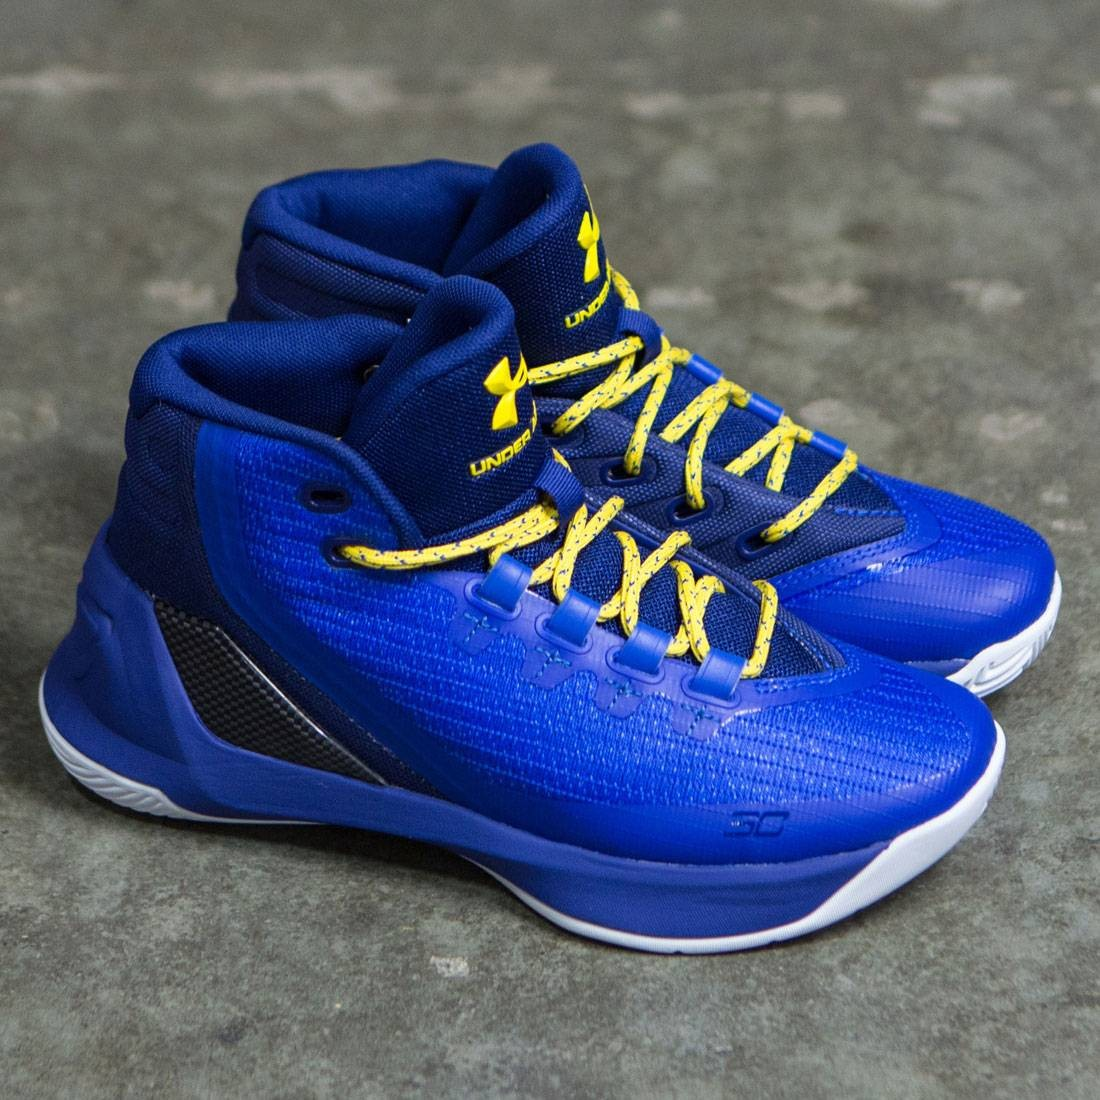 2ec3594657c5 ... Under Armour Big Kids Curry 3 - Dub Nation Heritage (blue yellow) ...